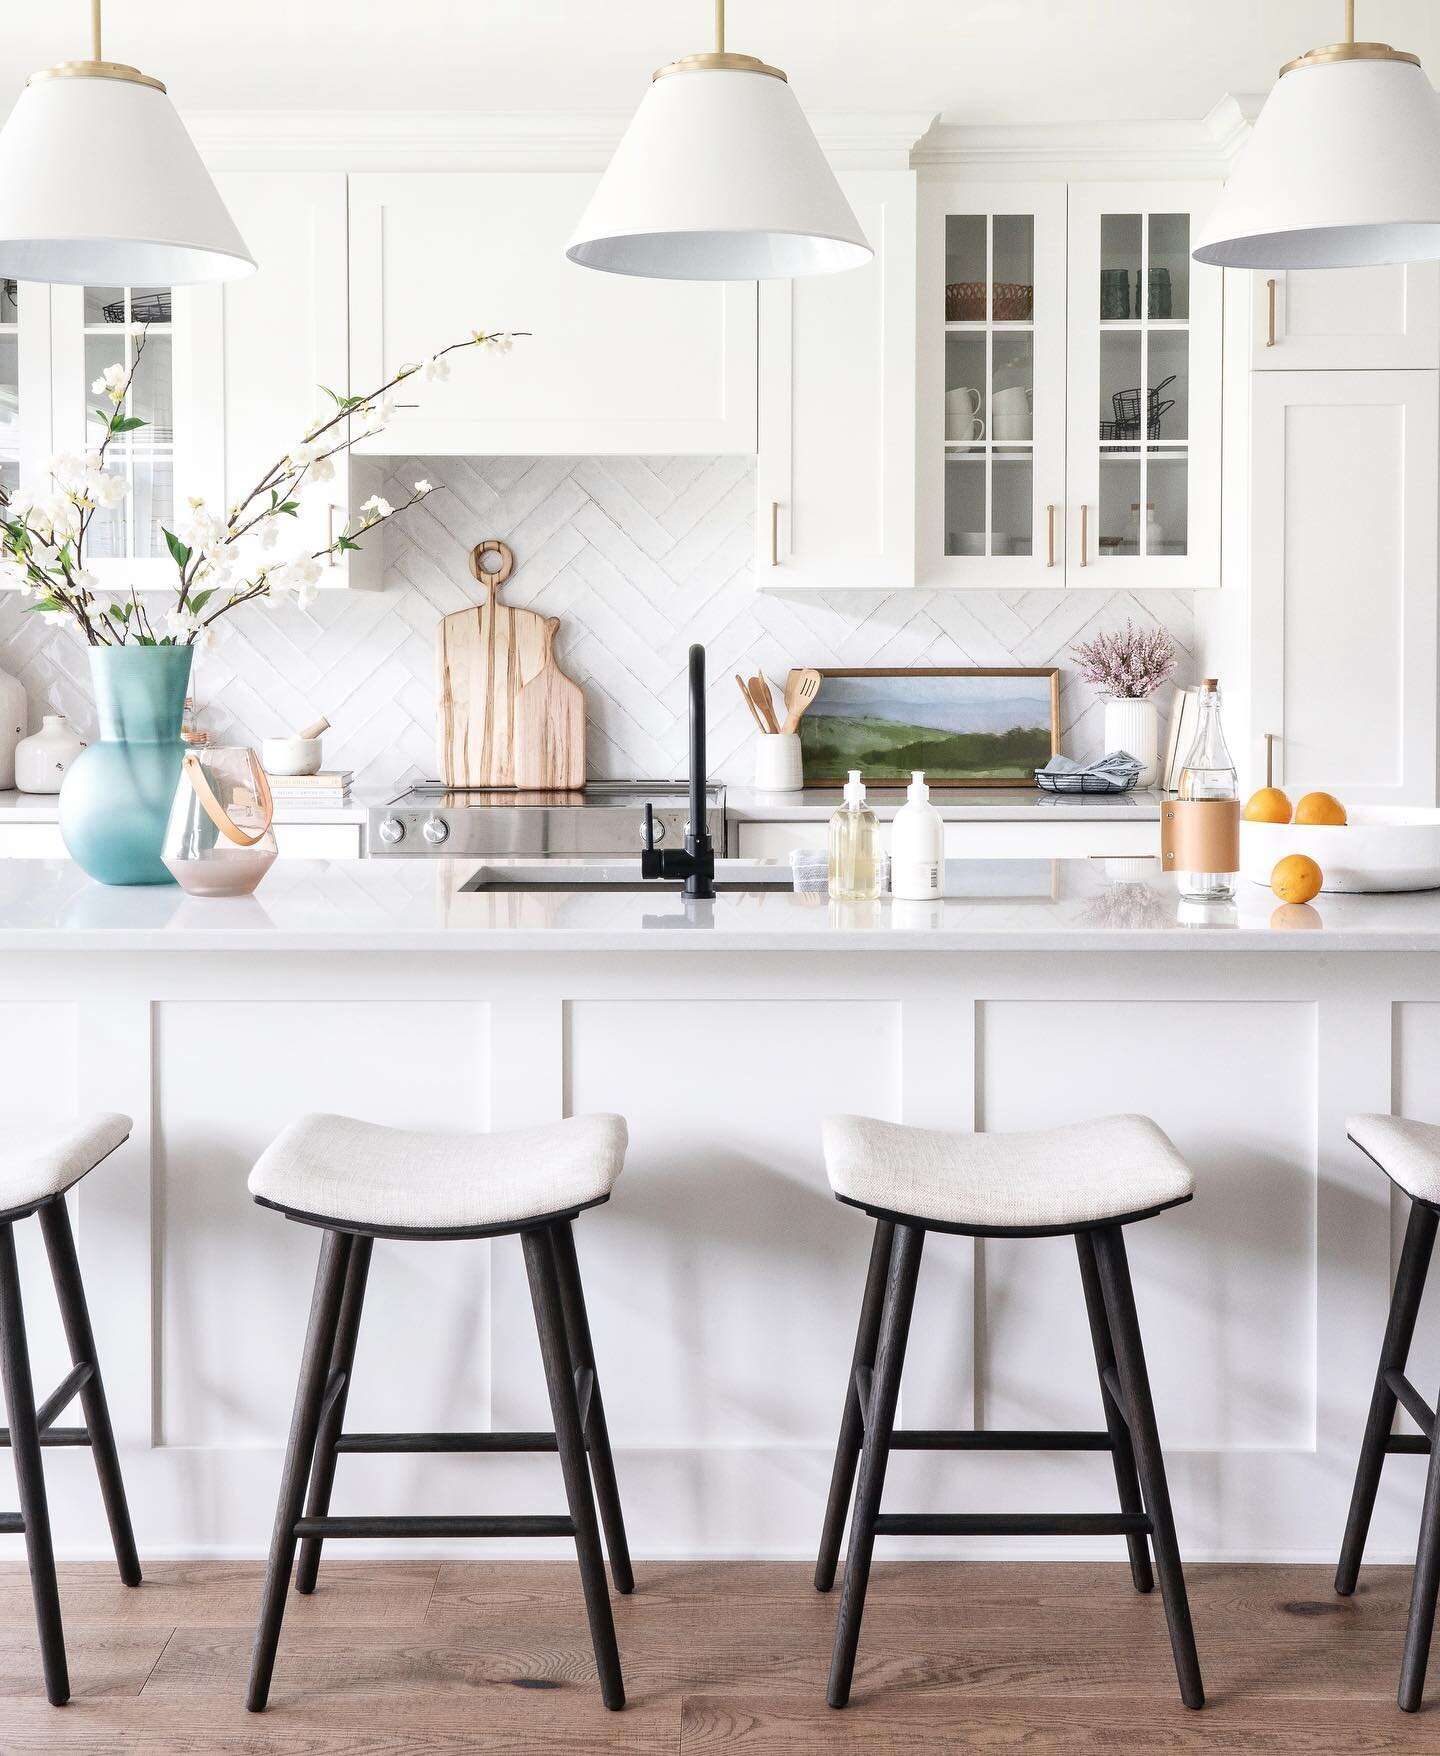 You cannot go wrong with a white shaker kitchen.